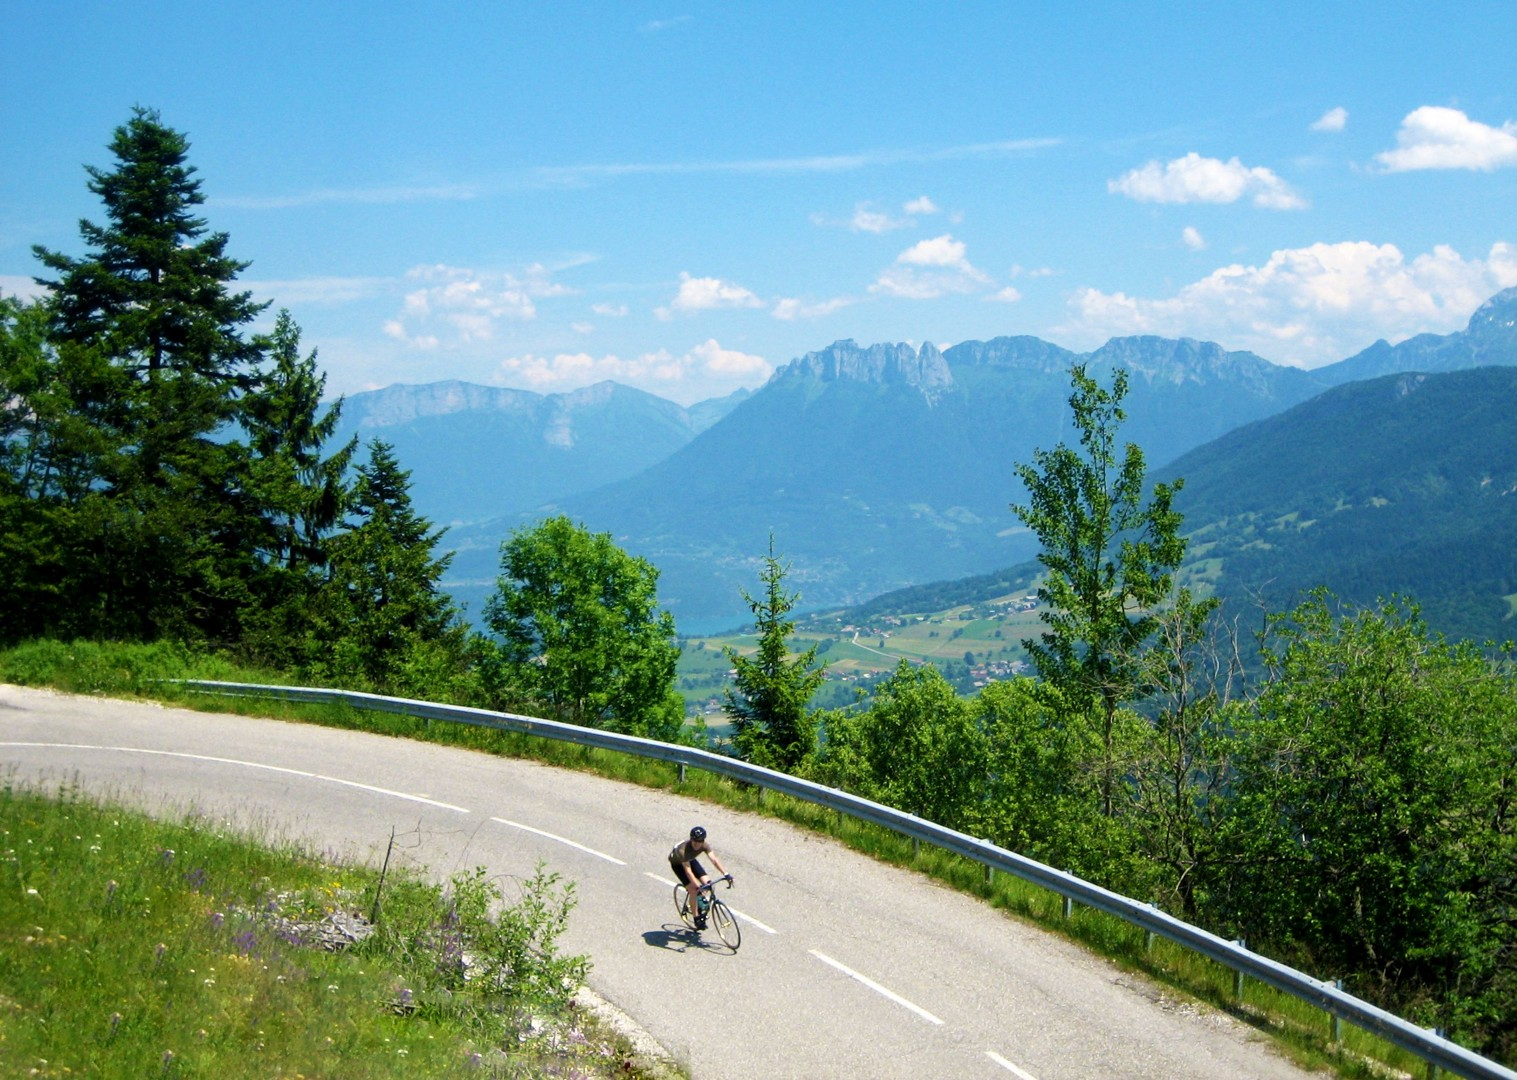 fast-descent-cycling-guided-road-adventure-alps-france-mont-velouz-to-alpe-dhuez.jpg - France - Alps - Mont Ventoux to Alpe d'Huez - Guided Road Cycling Holiday - Road Cycling